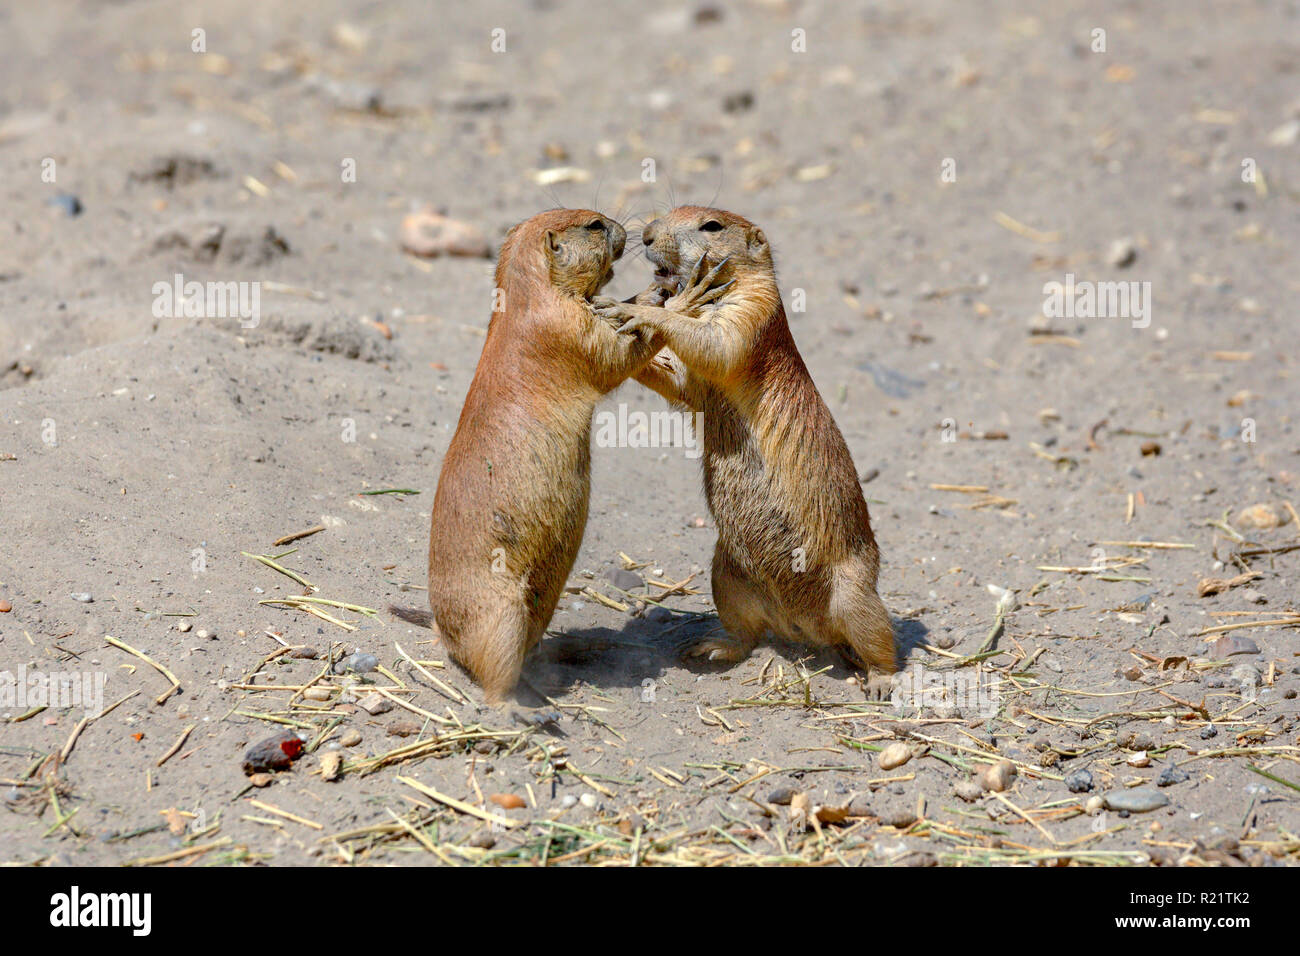 Two marmots in the natural environment - Stock Image